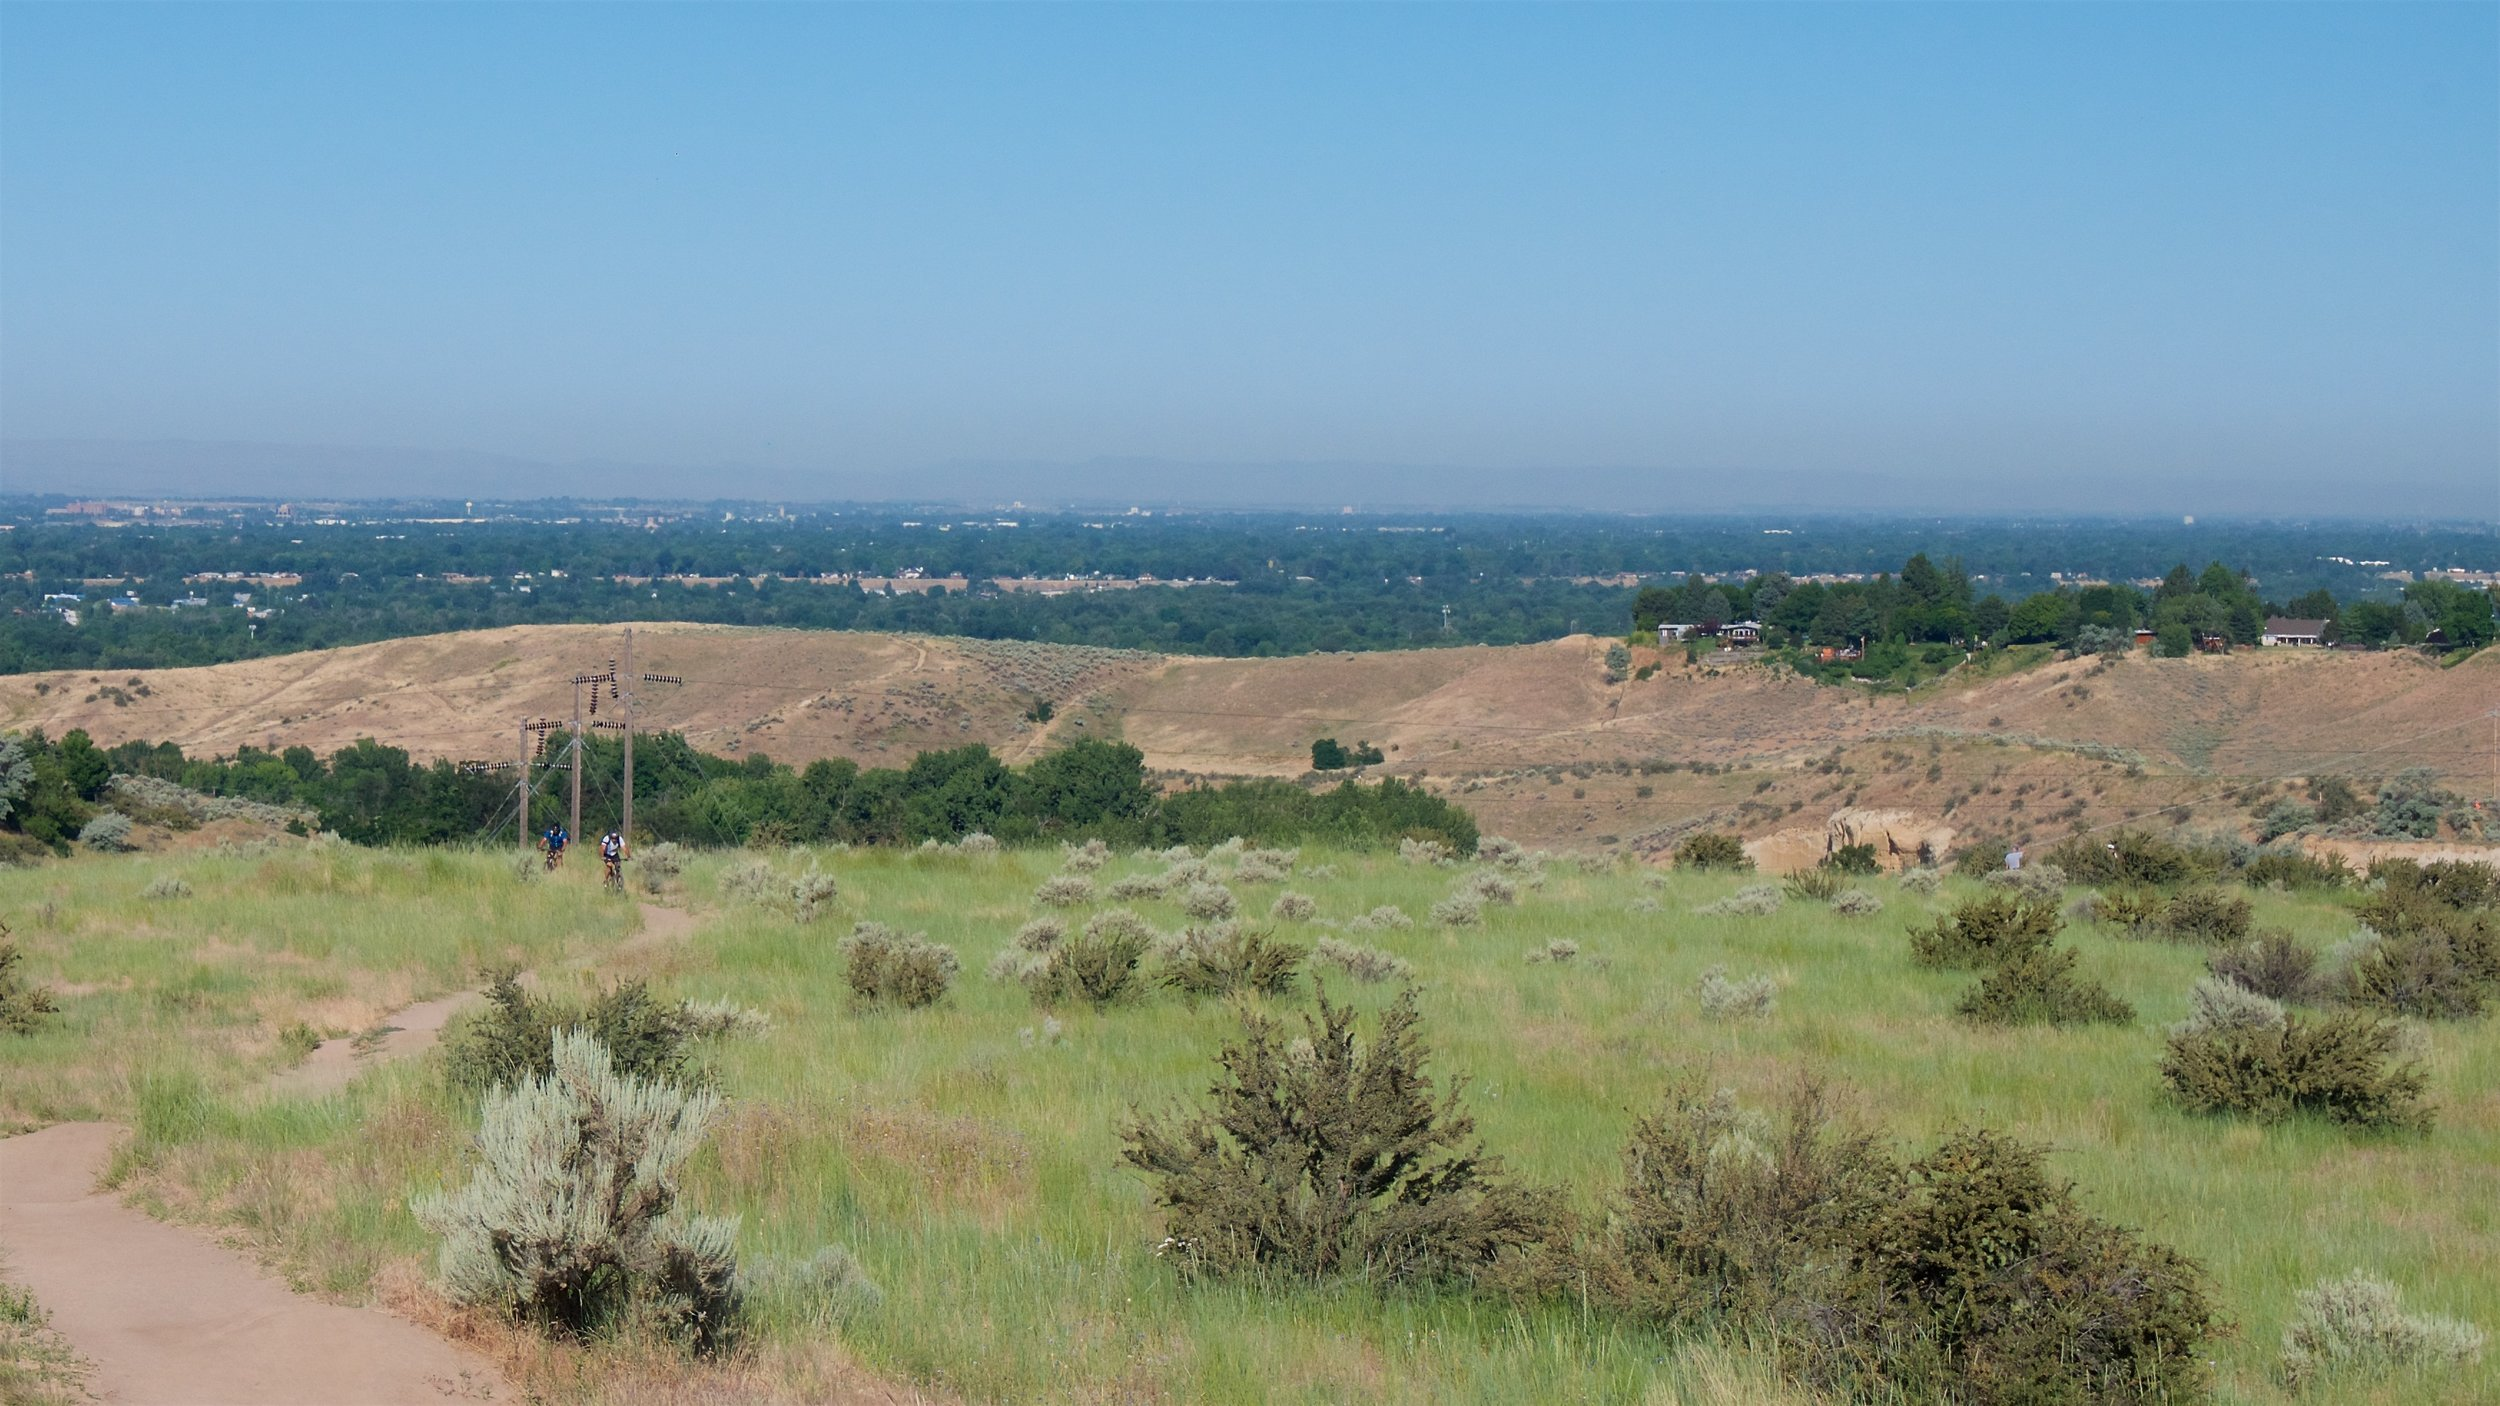 Mountain bikers on the trail; view of the city